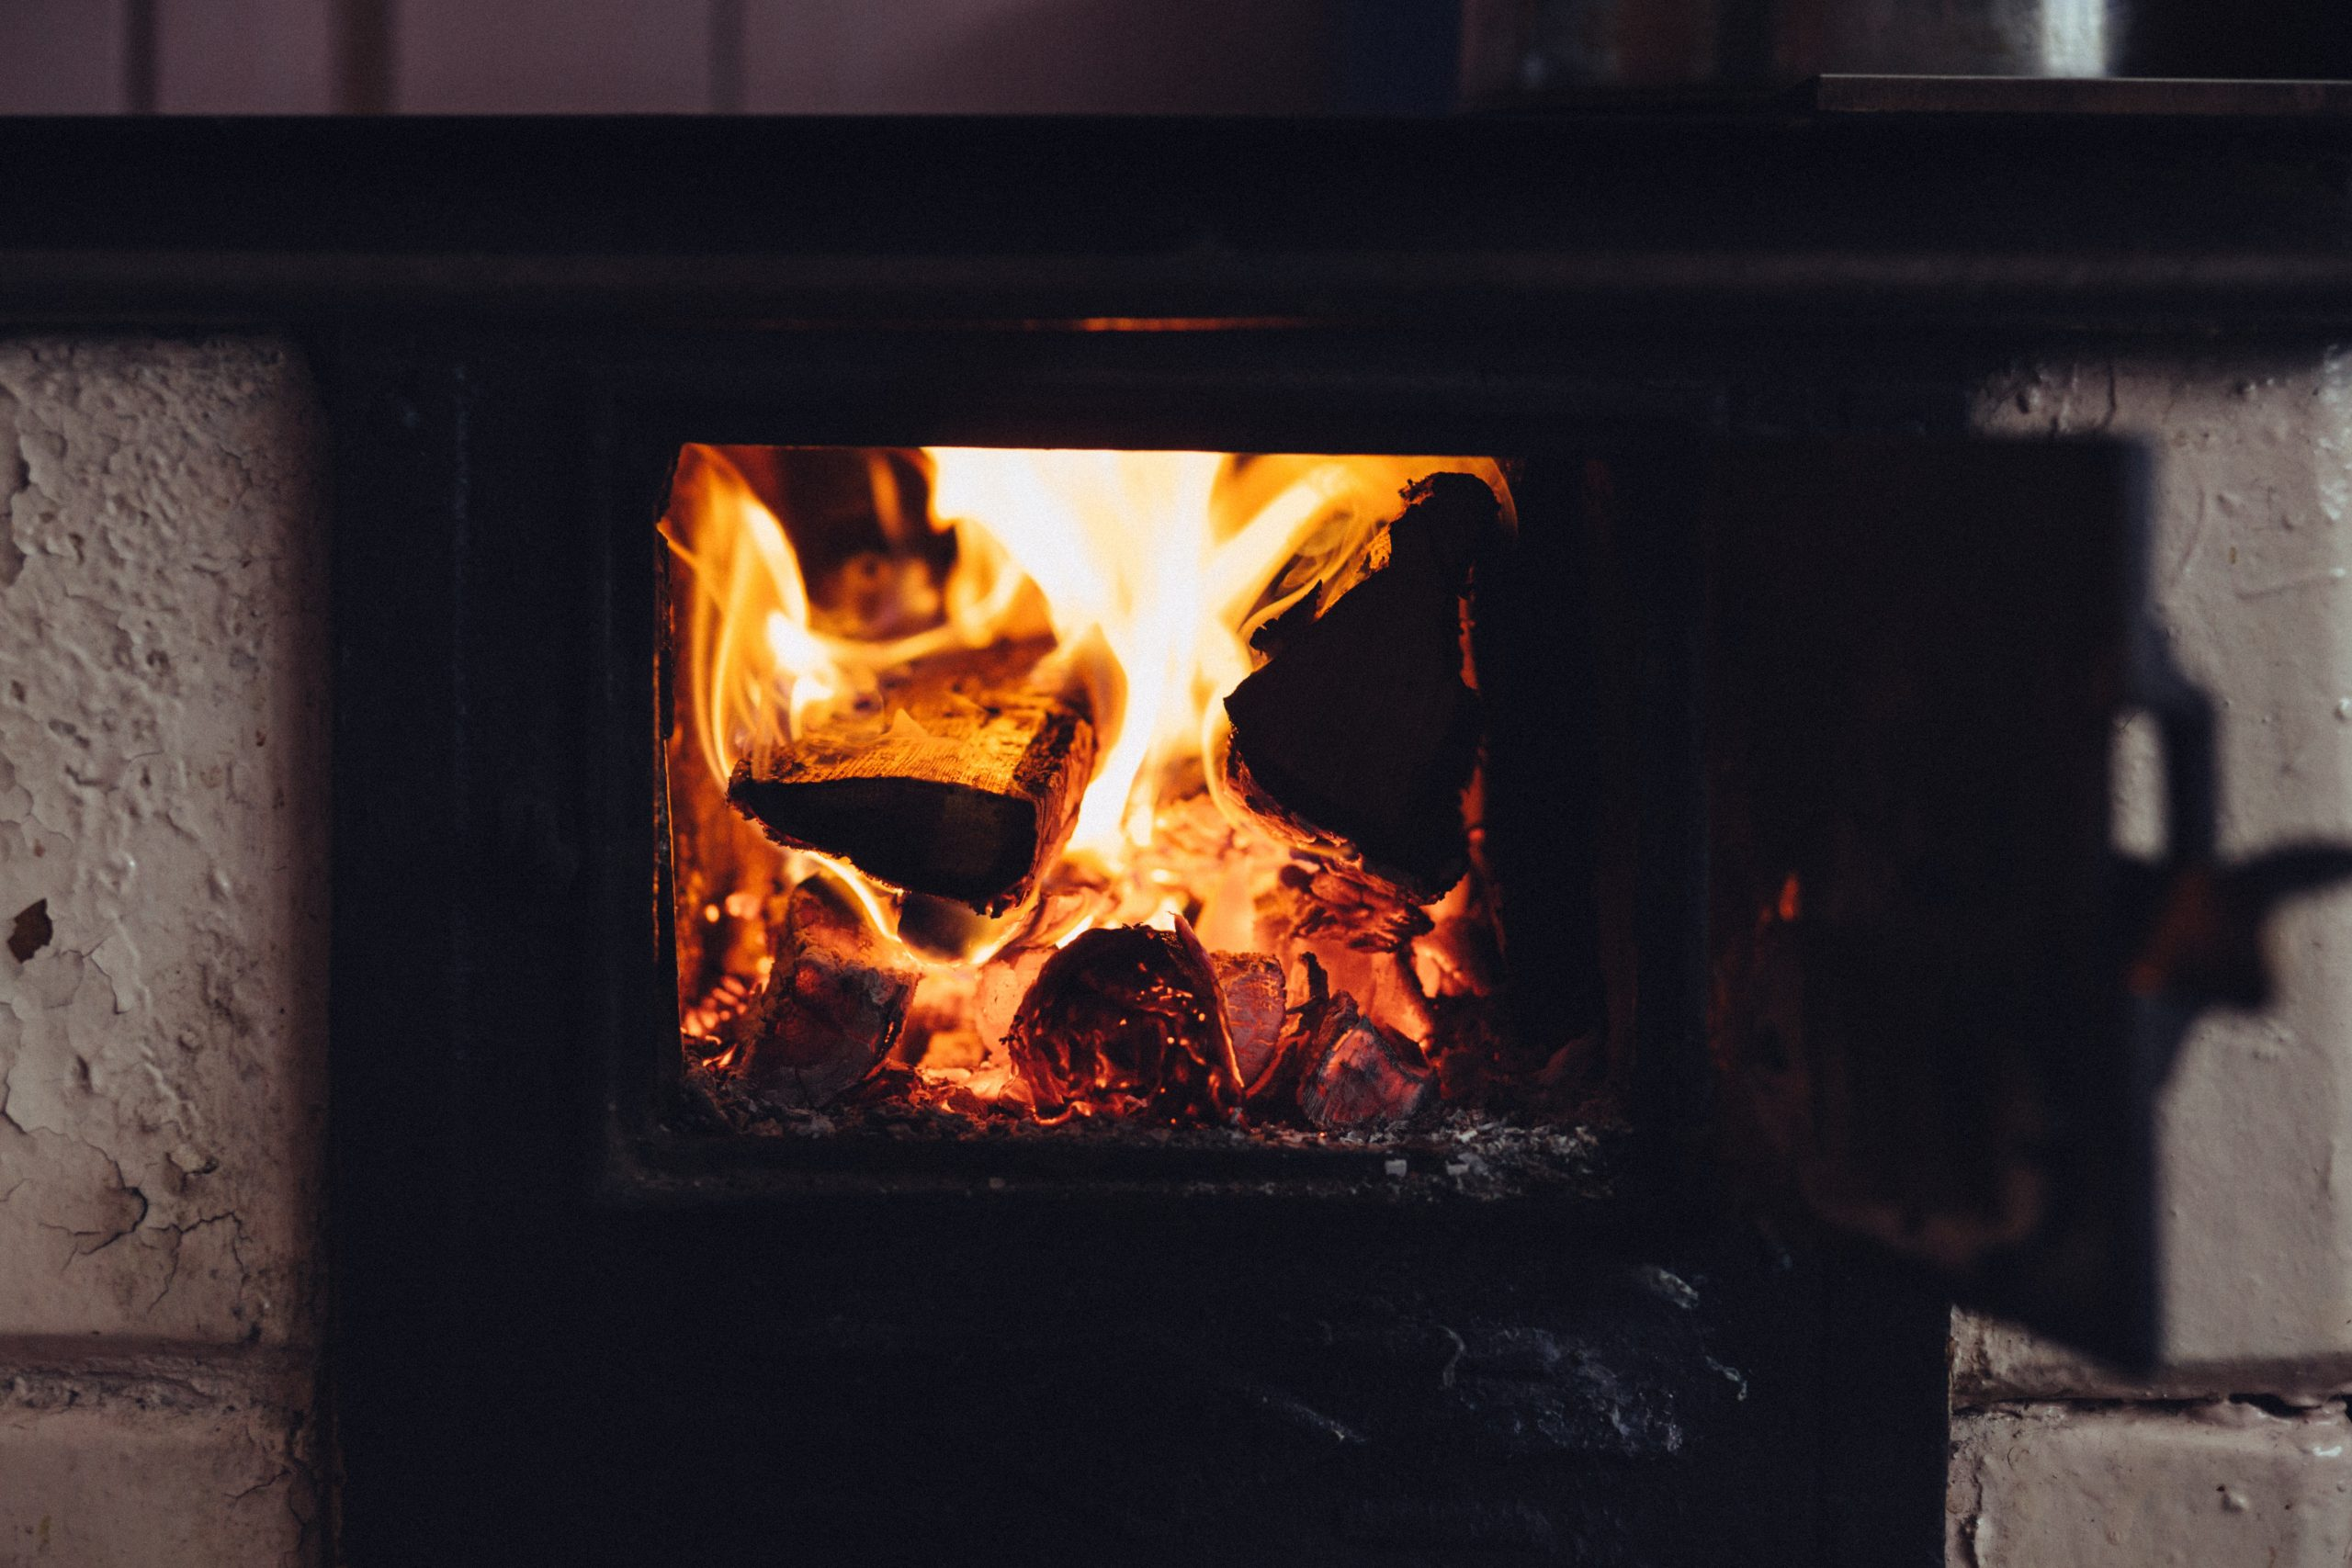 A bonfire burning in a black wood-burning stove.